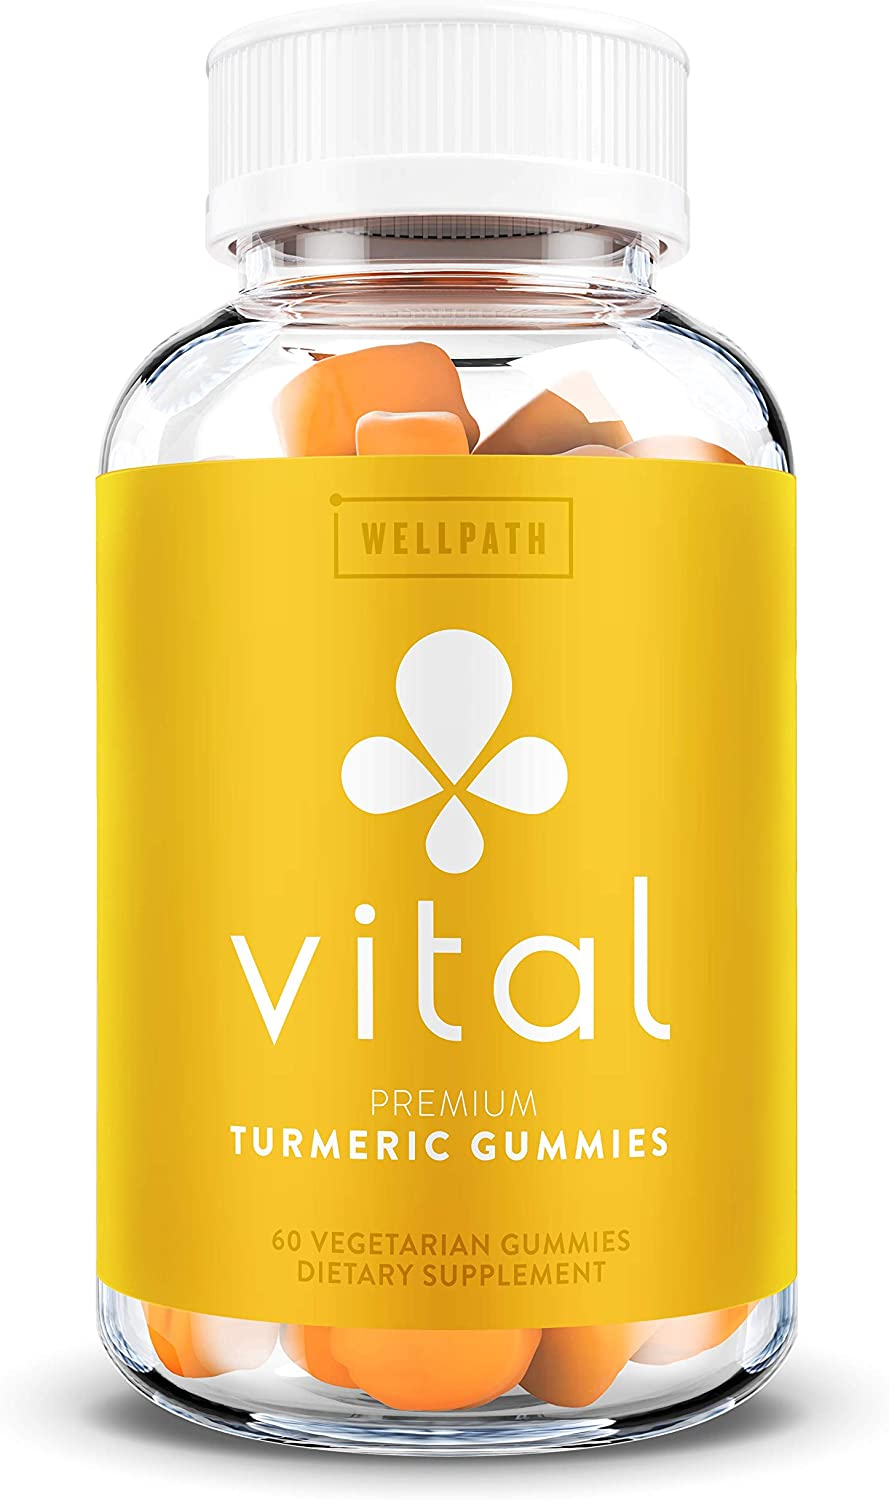 Vital Turmeric Gummies - Turmeric Curcumin Supplement with Ginger - Tasty Gummy Alternative to Turmeric Capsules - Anti-Inflammatory - Supports Joint Pain Relief